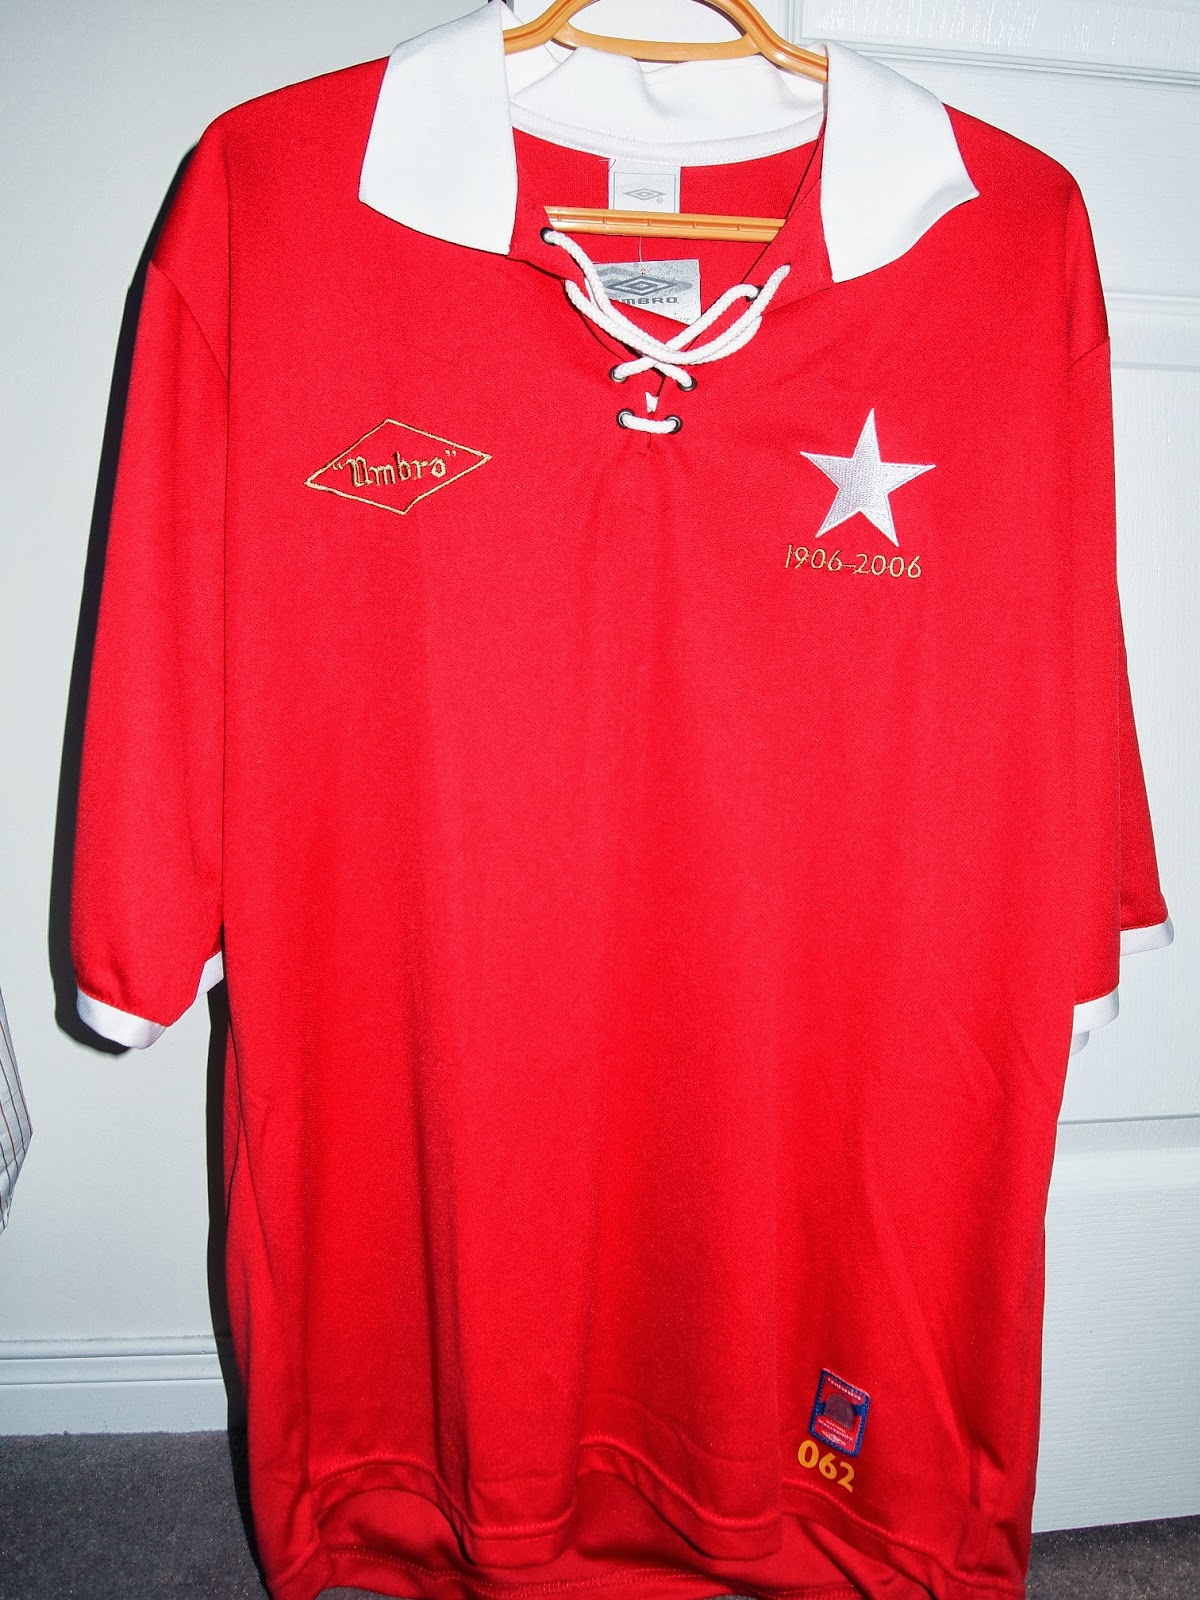 My Umbro Football Jerseys Collection: Wisla Krakow 2006 ...